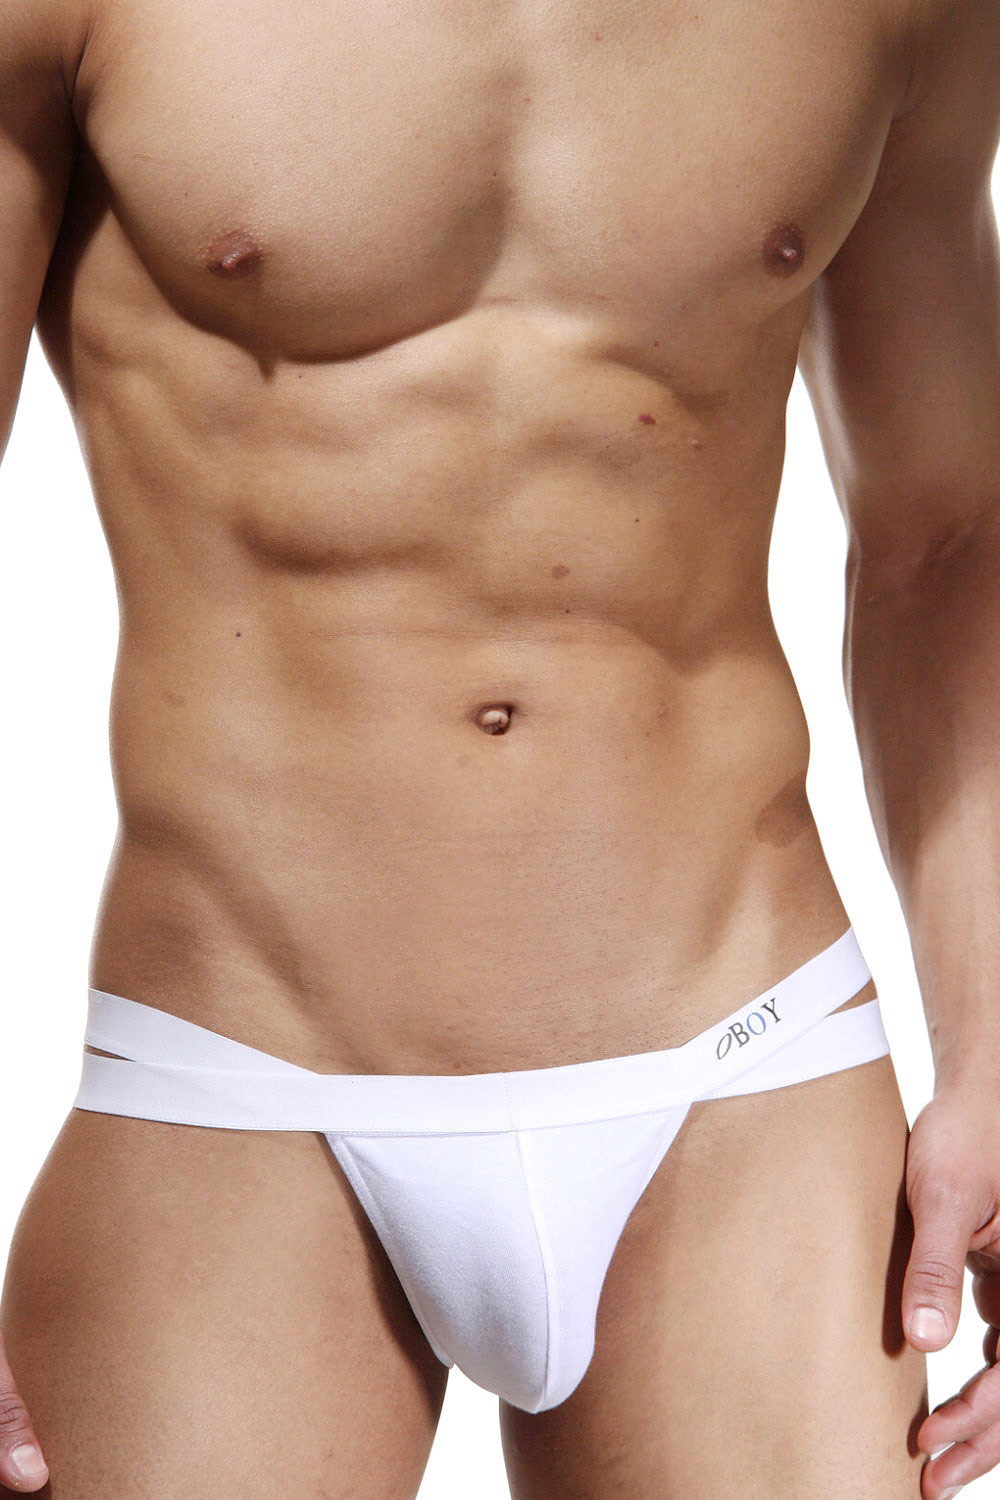 OBOY CLASSIC T.C. X brief pack of 2 at oboy.com